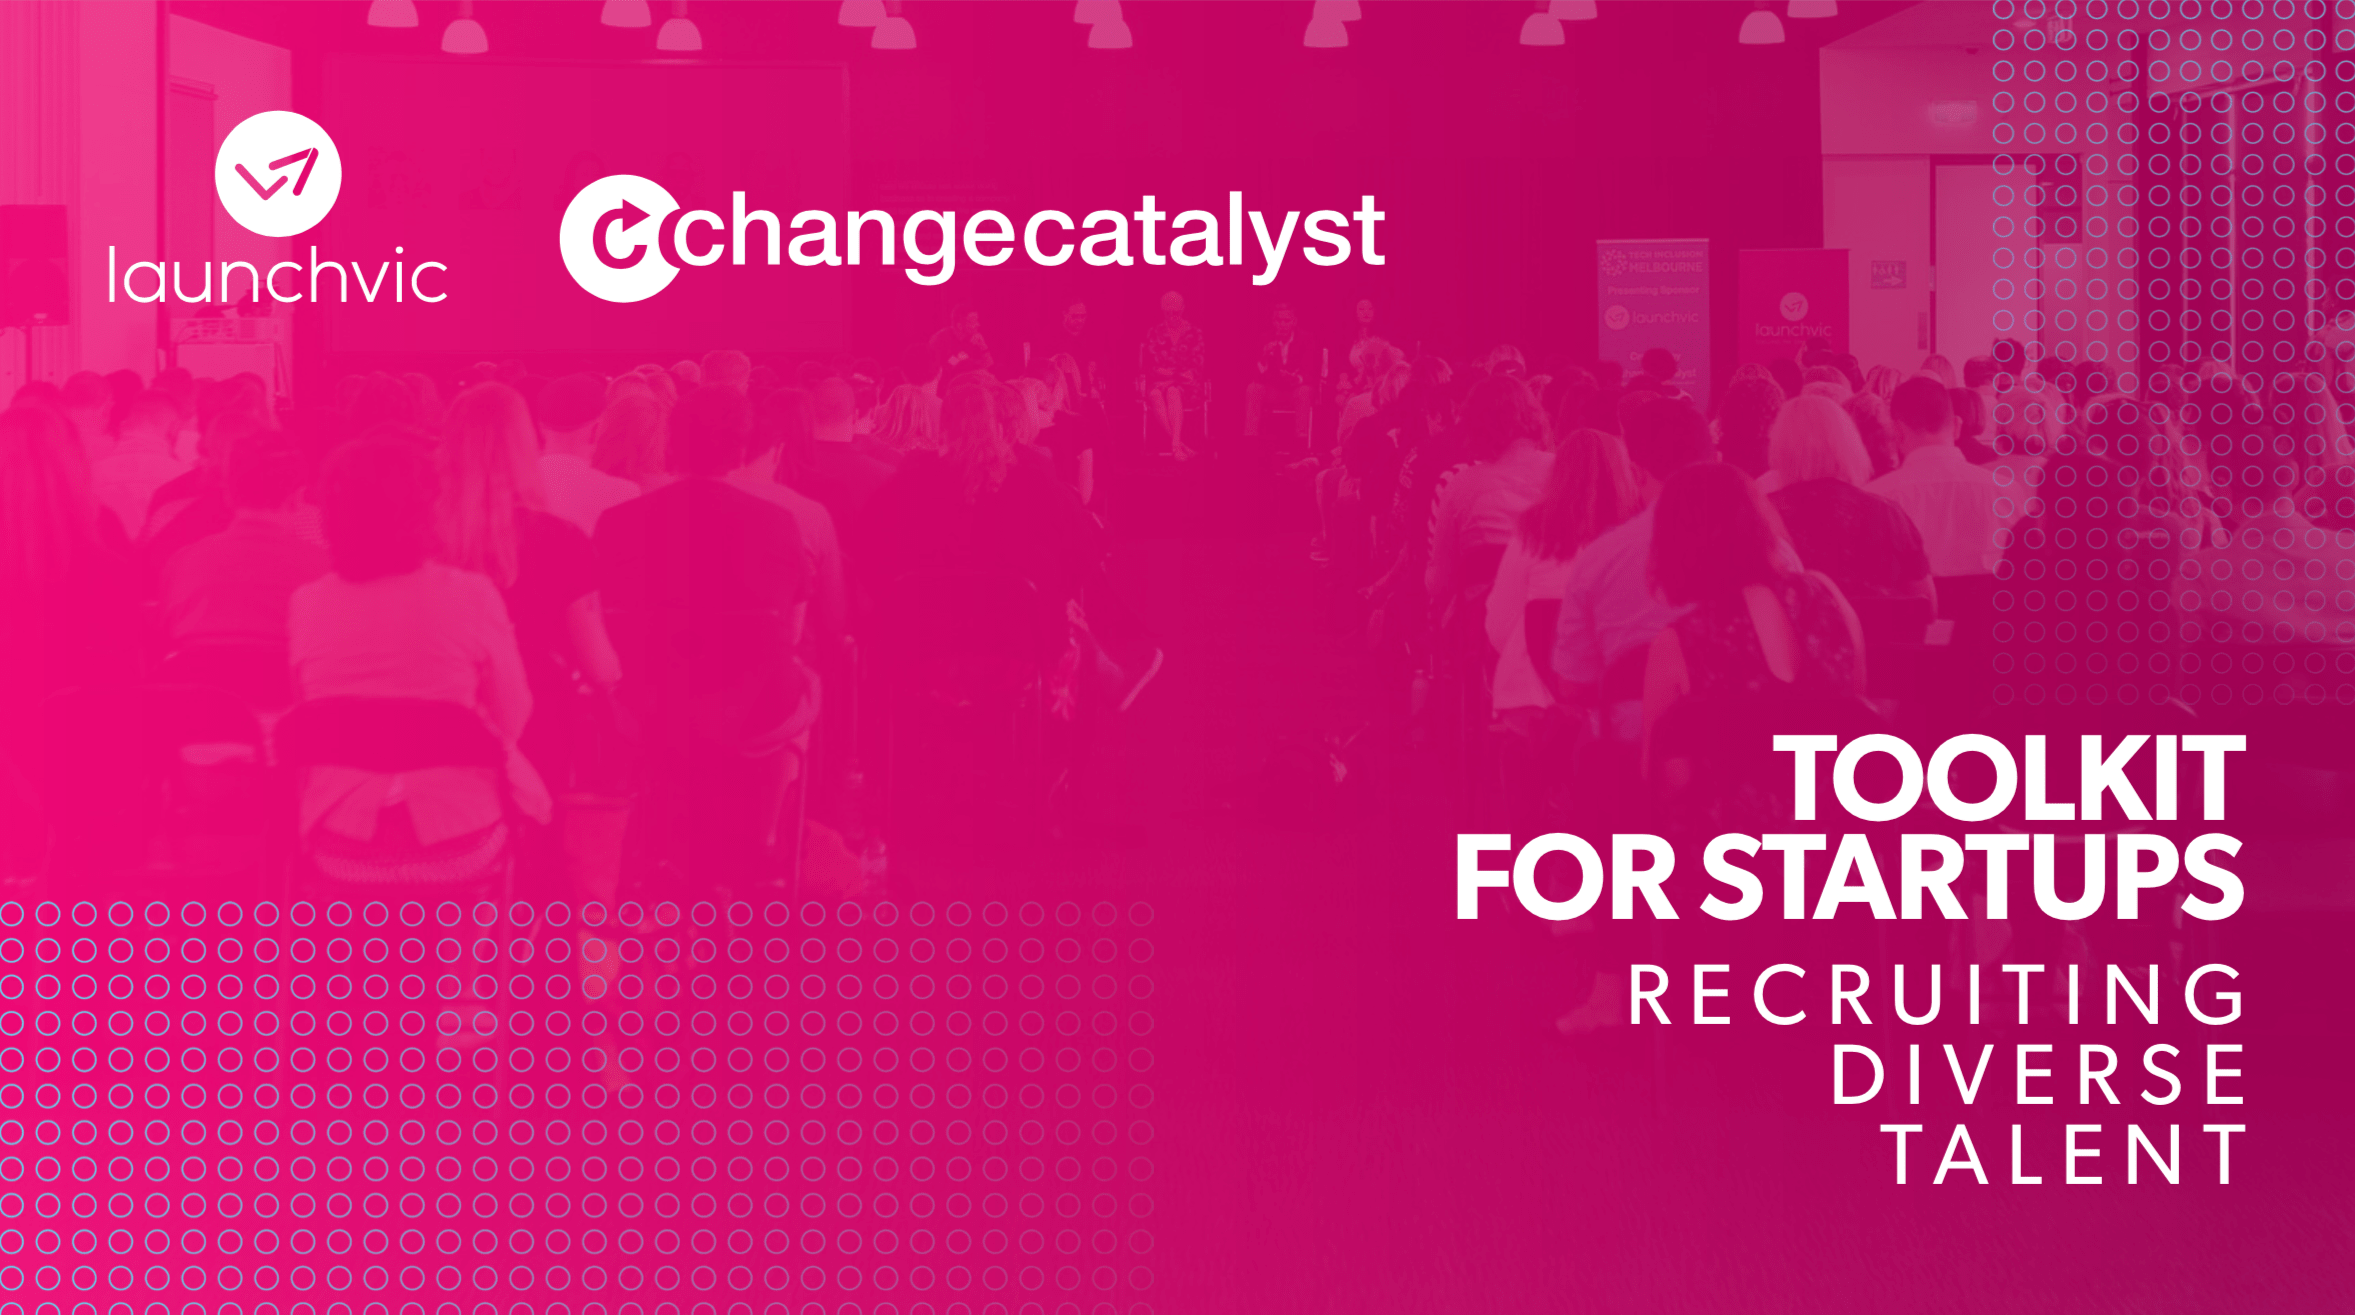 Change Catalyst and Launchvic Toolkit For Startups Recruiting Diverse Talent